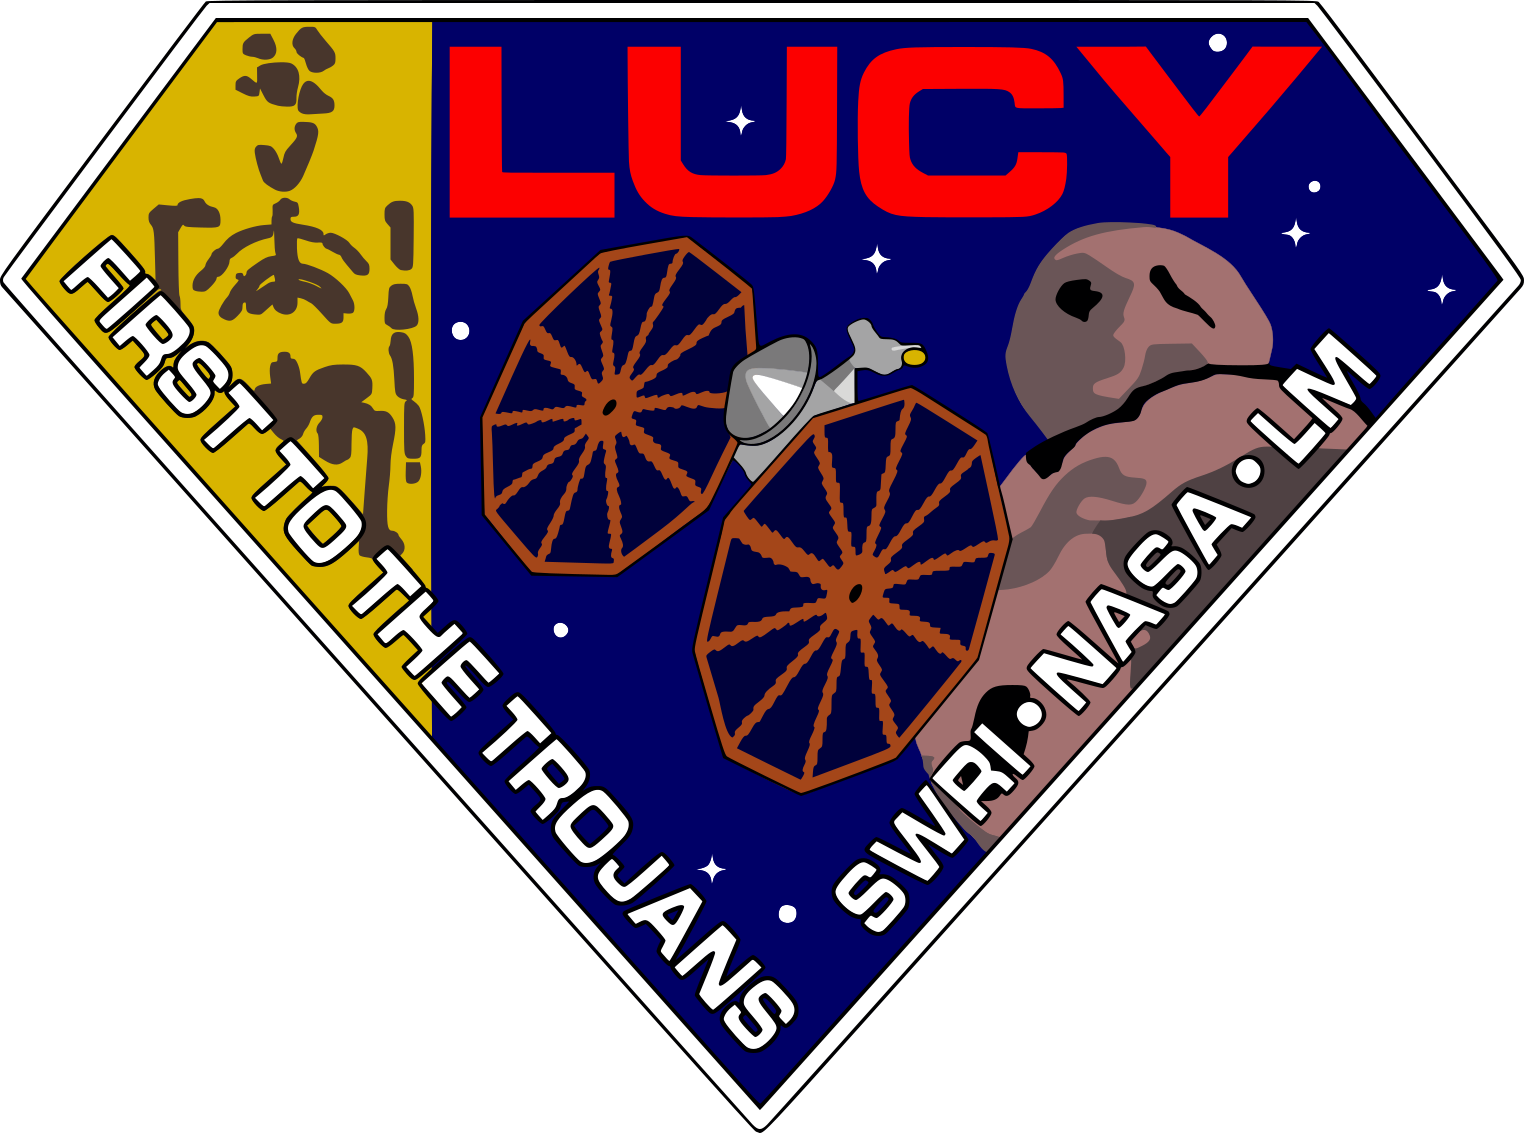 Lucy mission insignia